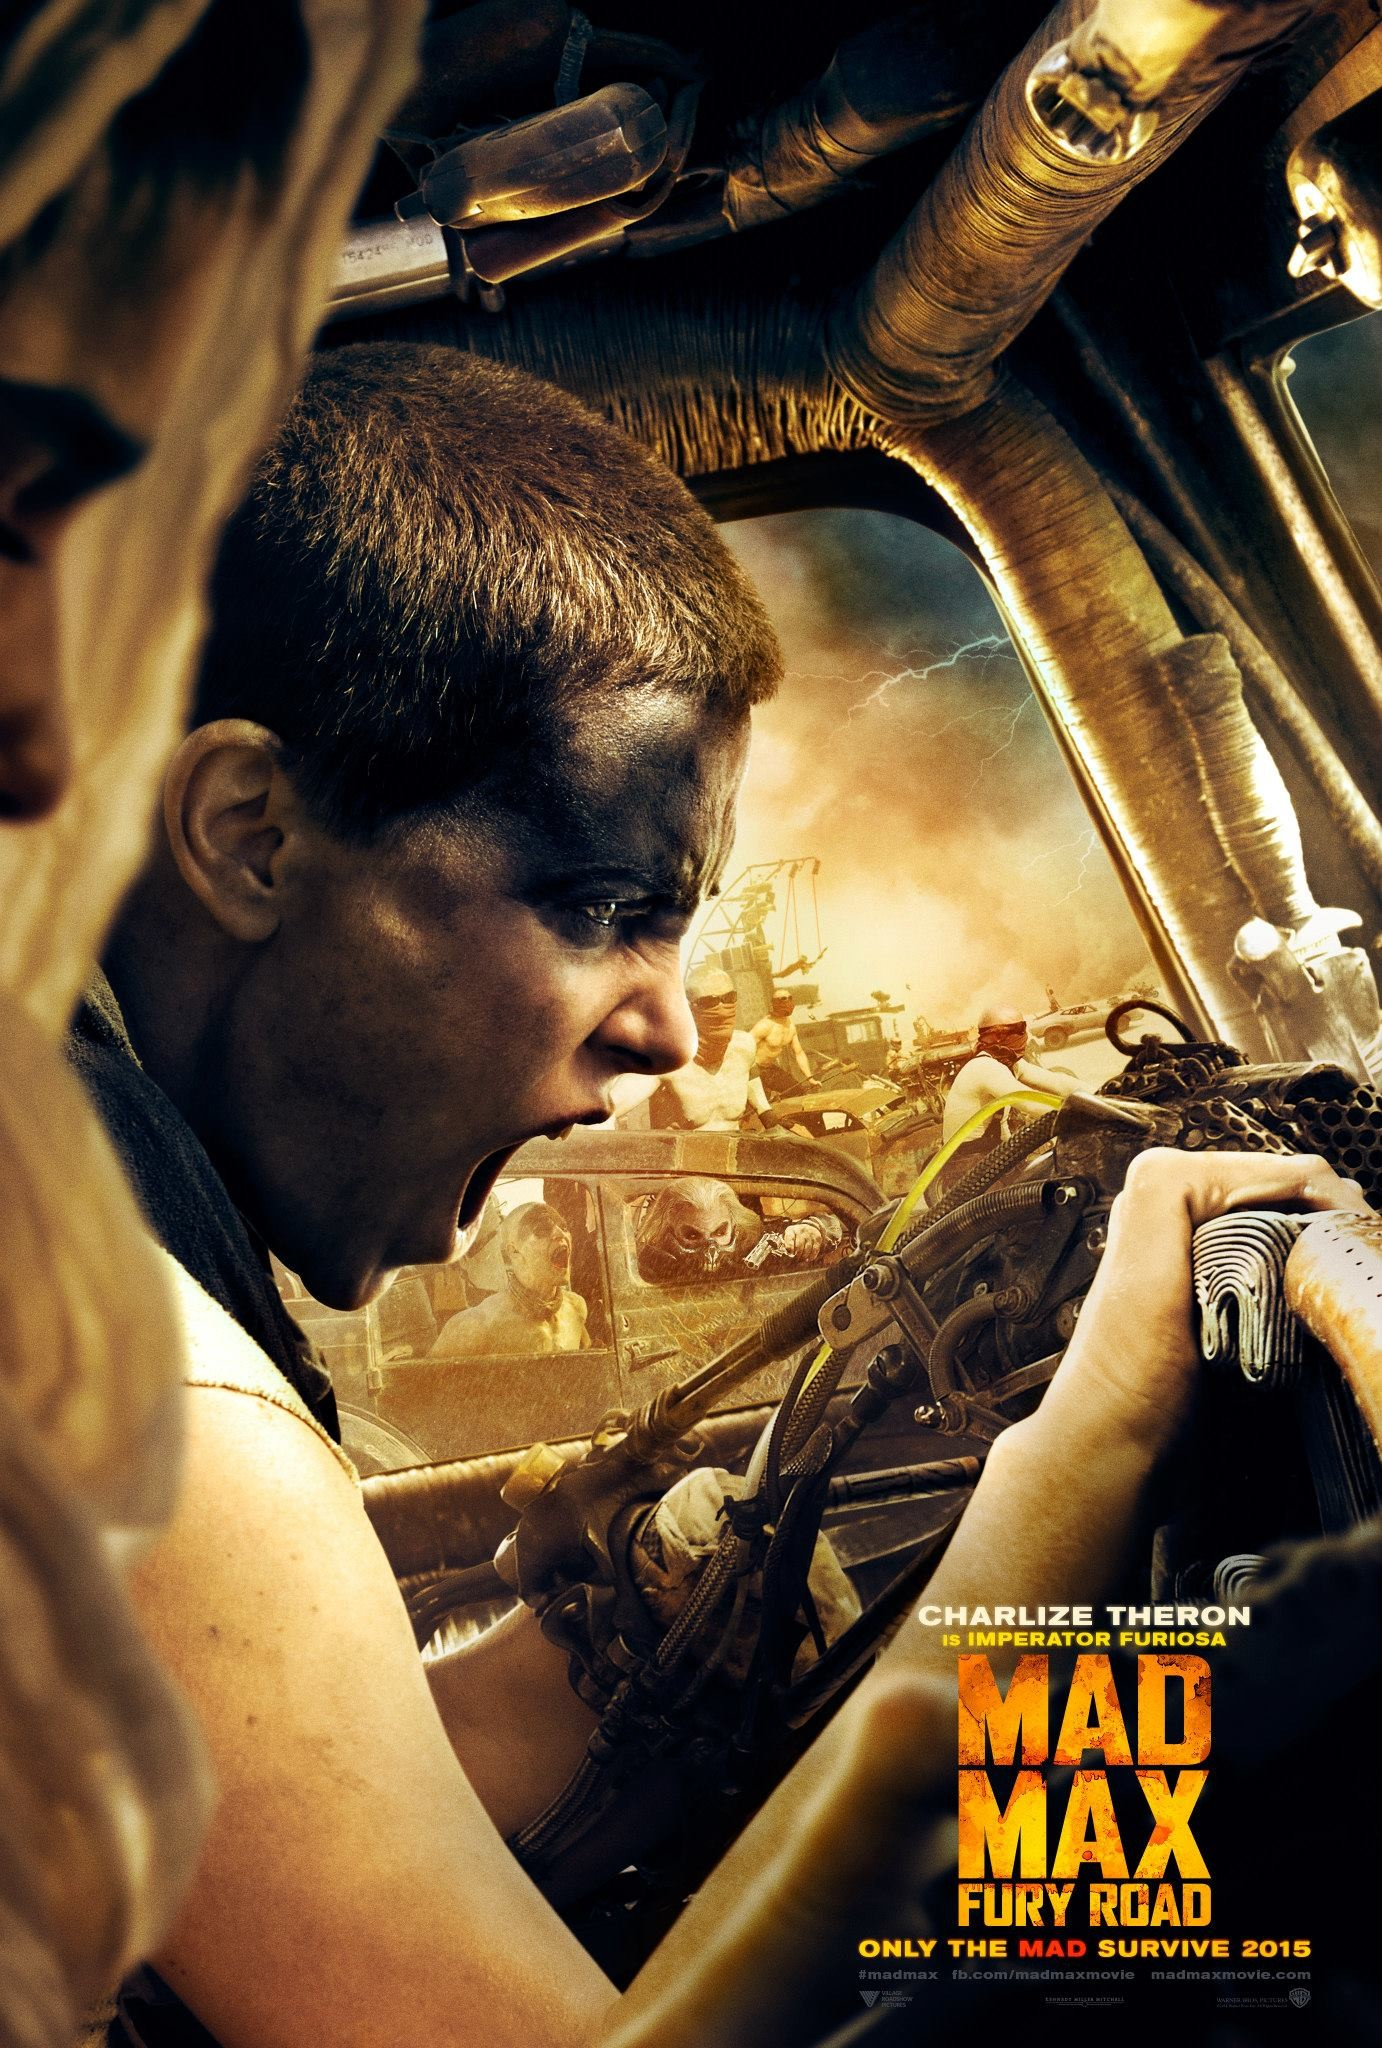 Mad Max Fury Road-Official Poster Banner PROMO CHAR-28JULHO2014-02